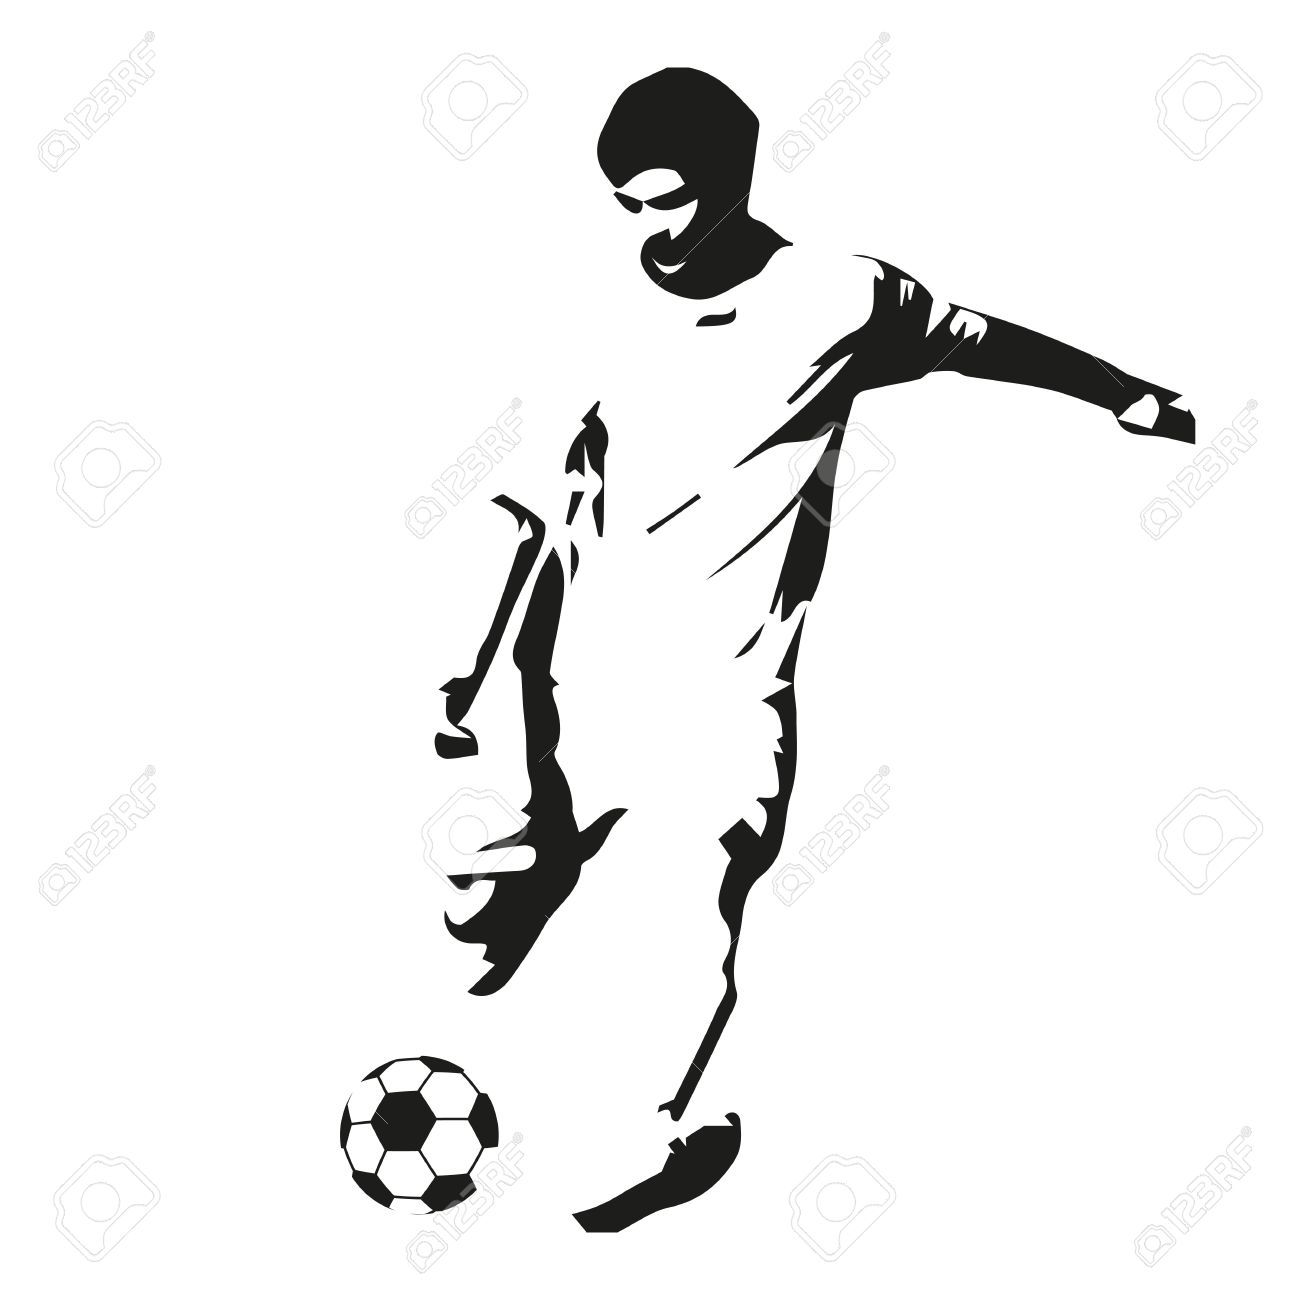 soccer player vector illustration footballer isolated abstract rh 123rf com football player vector image football player victor cruz